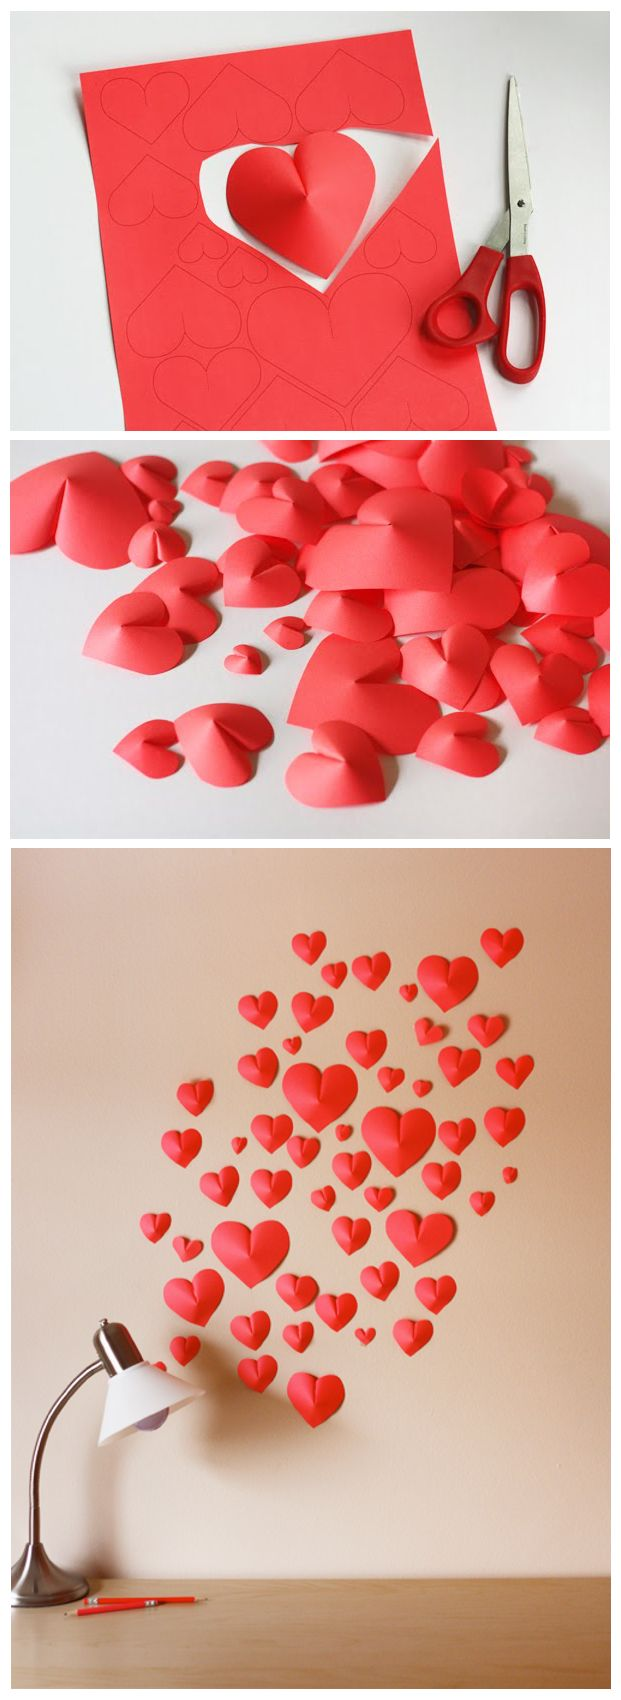 25 unique paper wall decor ideas on pinterest diy wall flowers make a wall of simple paper origami hearts amipublicfo Images